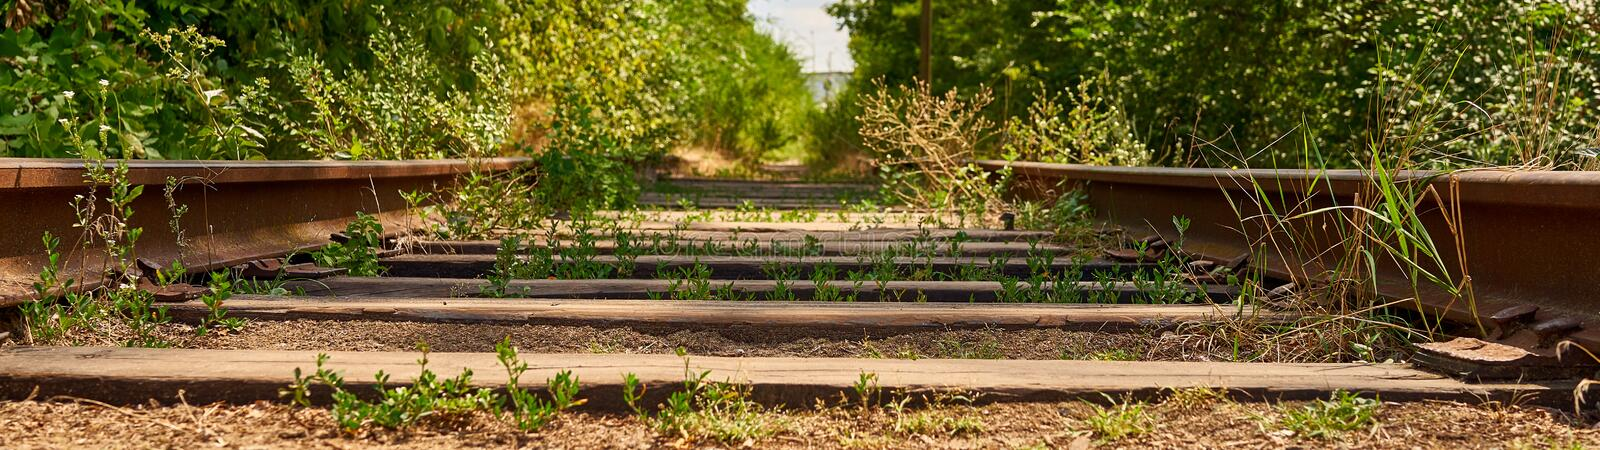 Old railroad tracks in the country stock photography